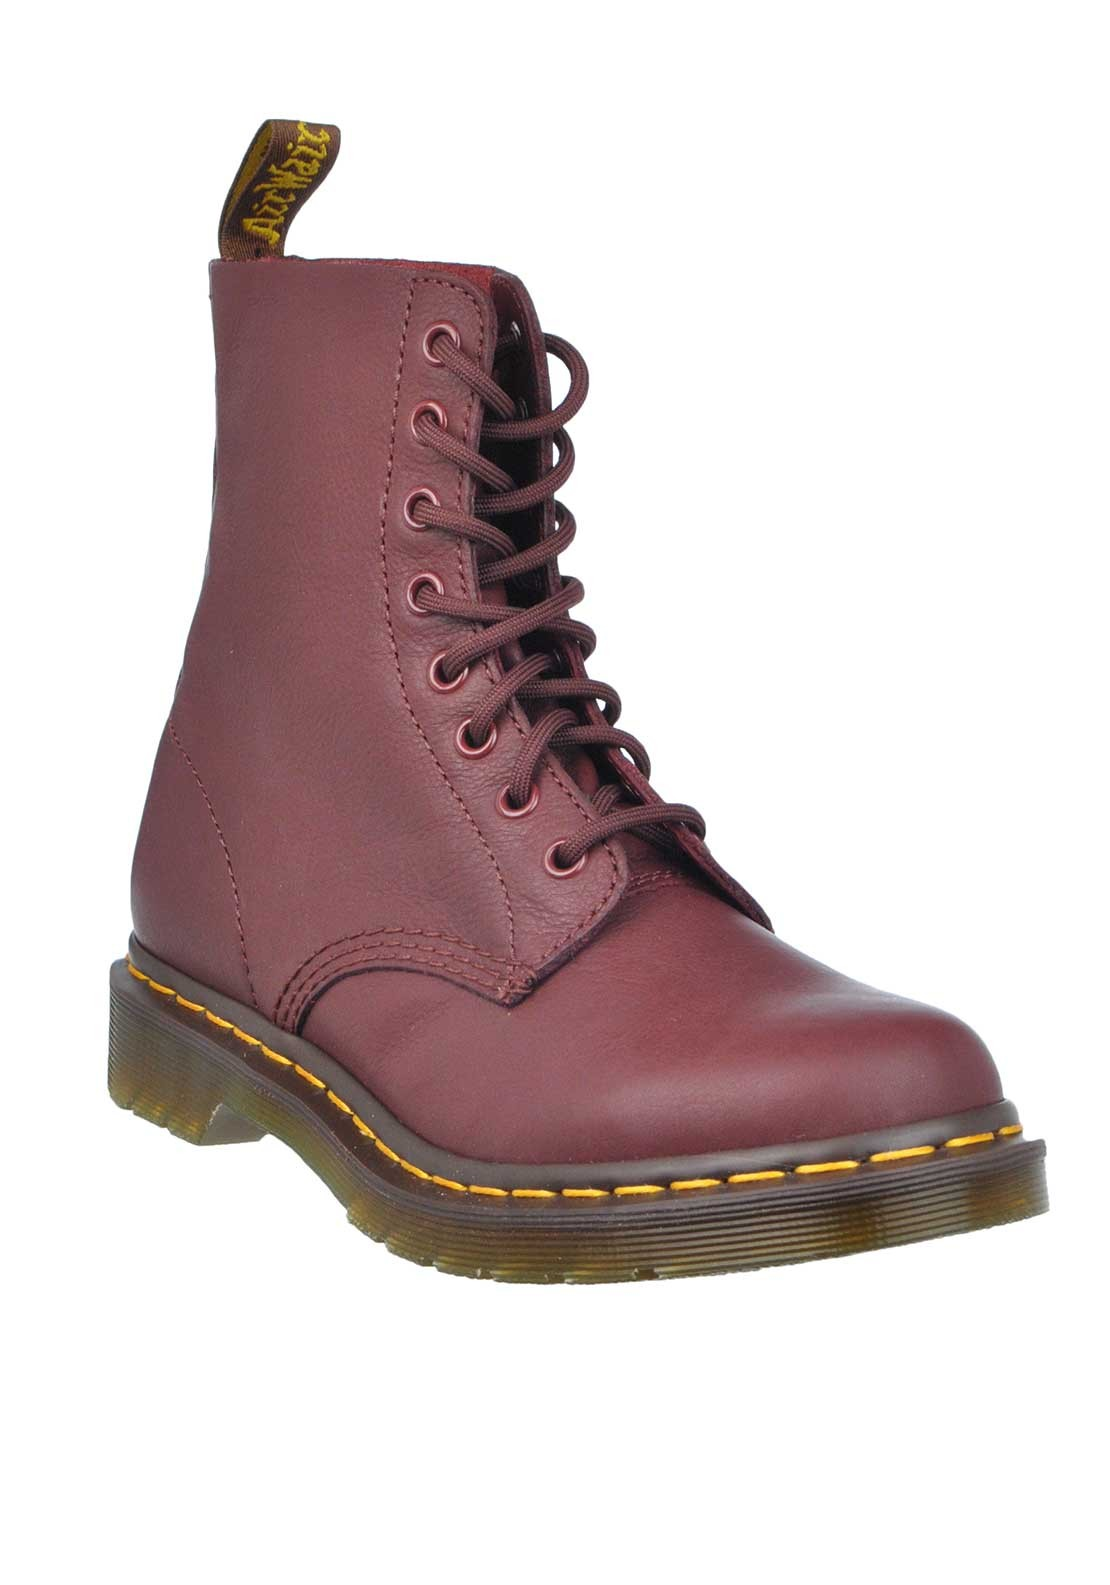 Dr. Martens Womens Pascal Leather Boots, Cherry